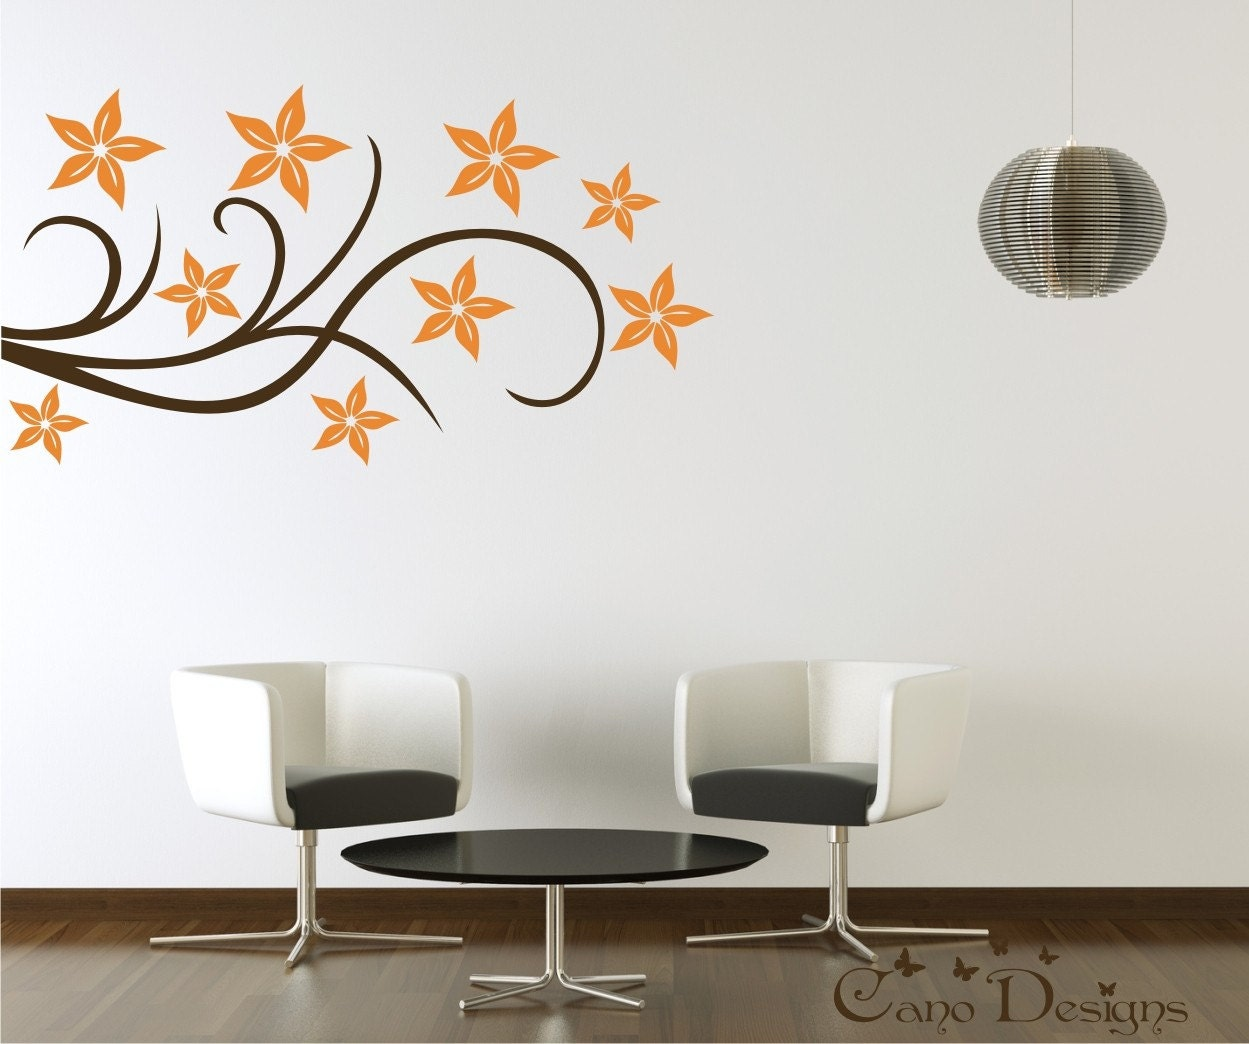 Floral design vinyl decal wall decals stickers removable for Design wall mural